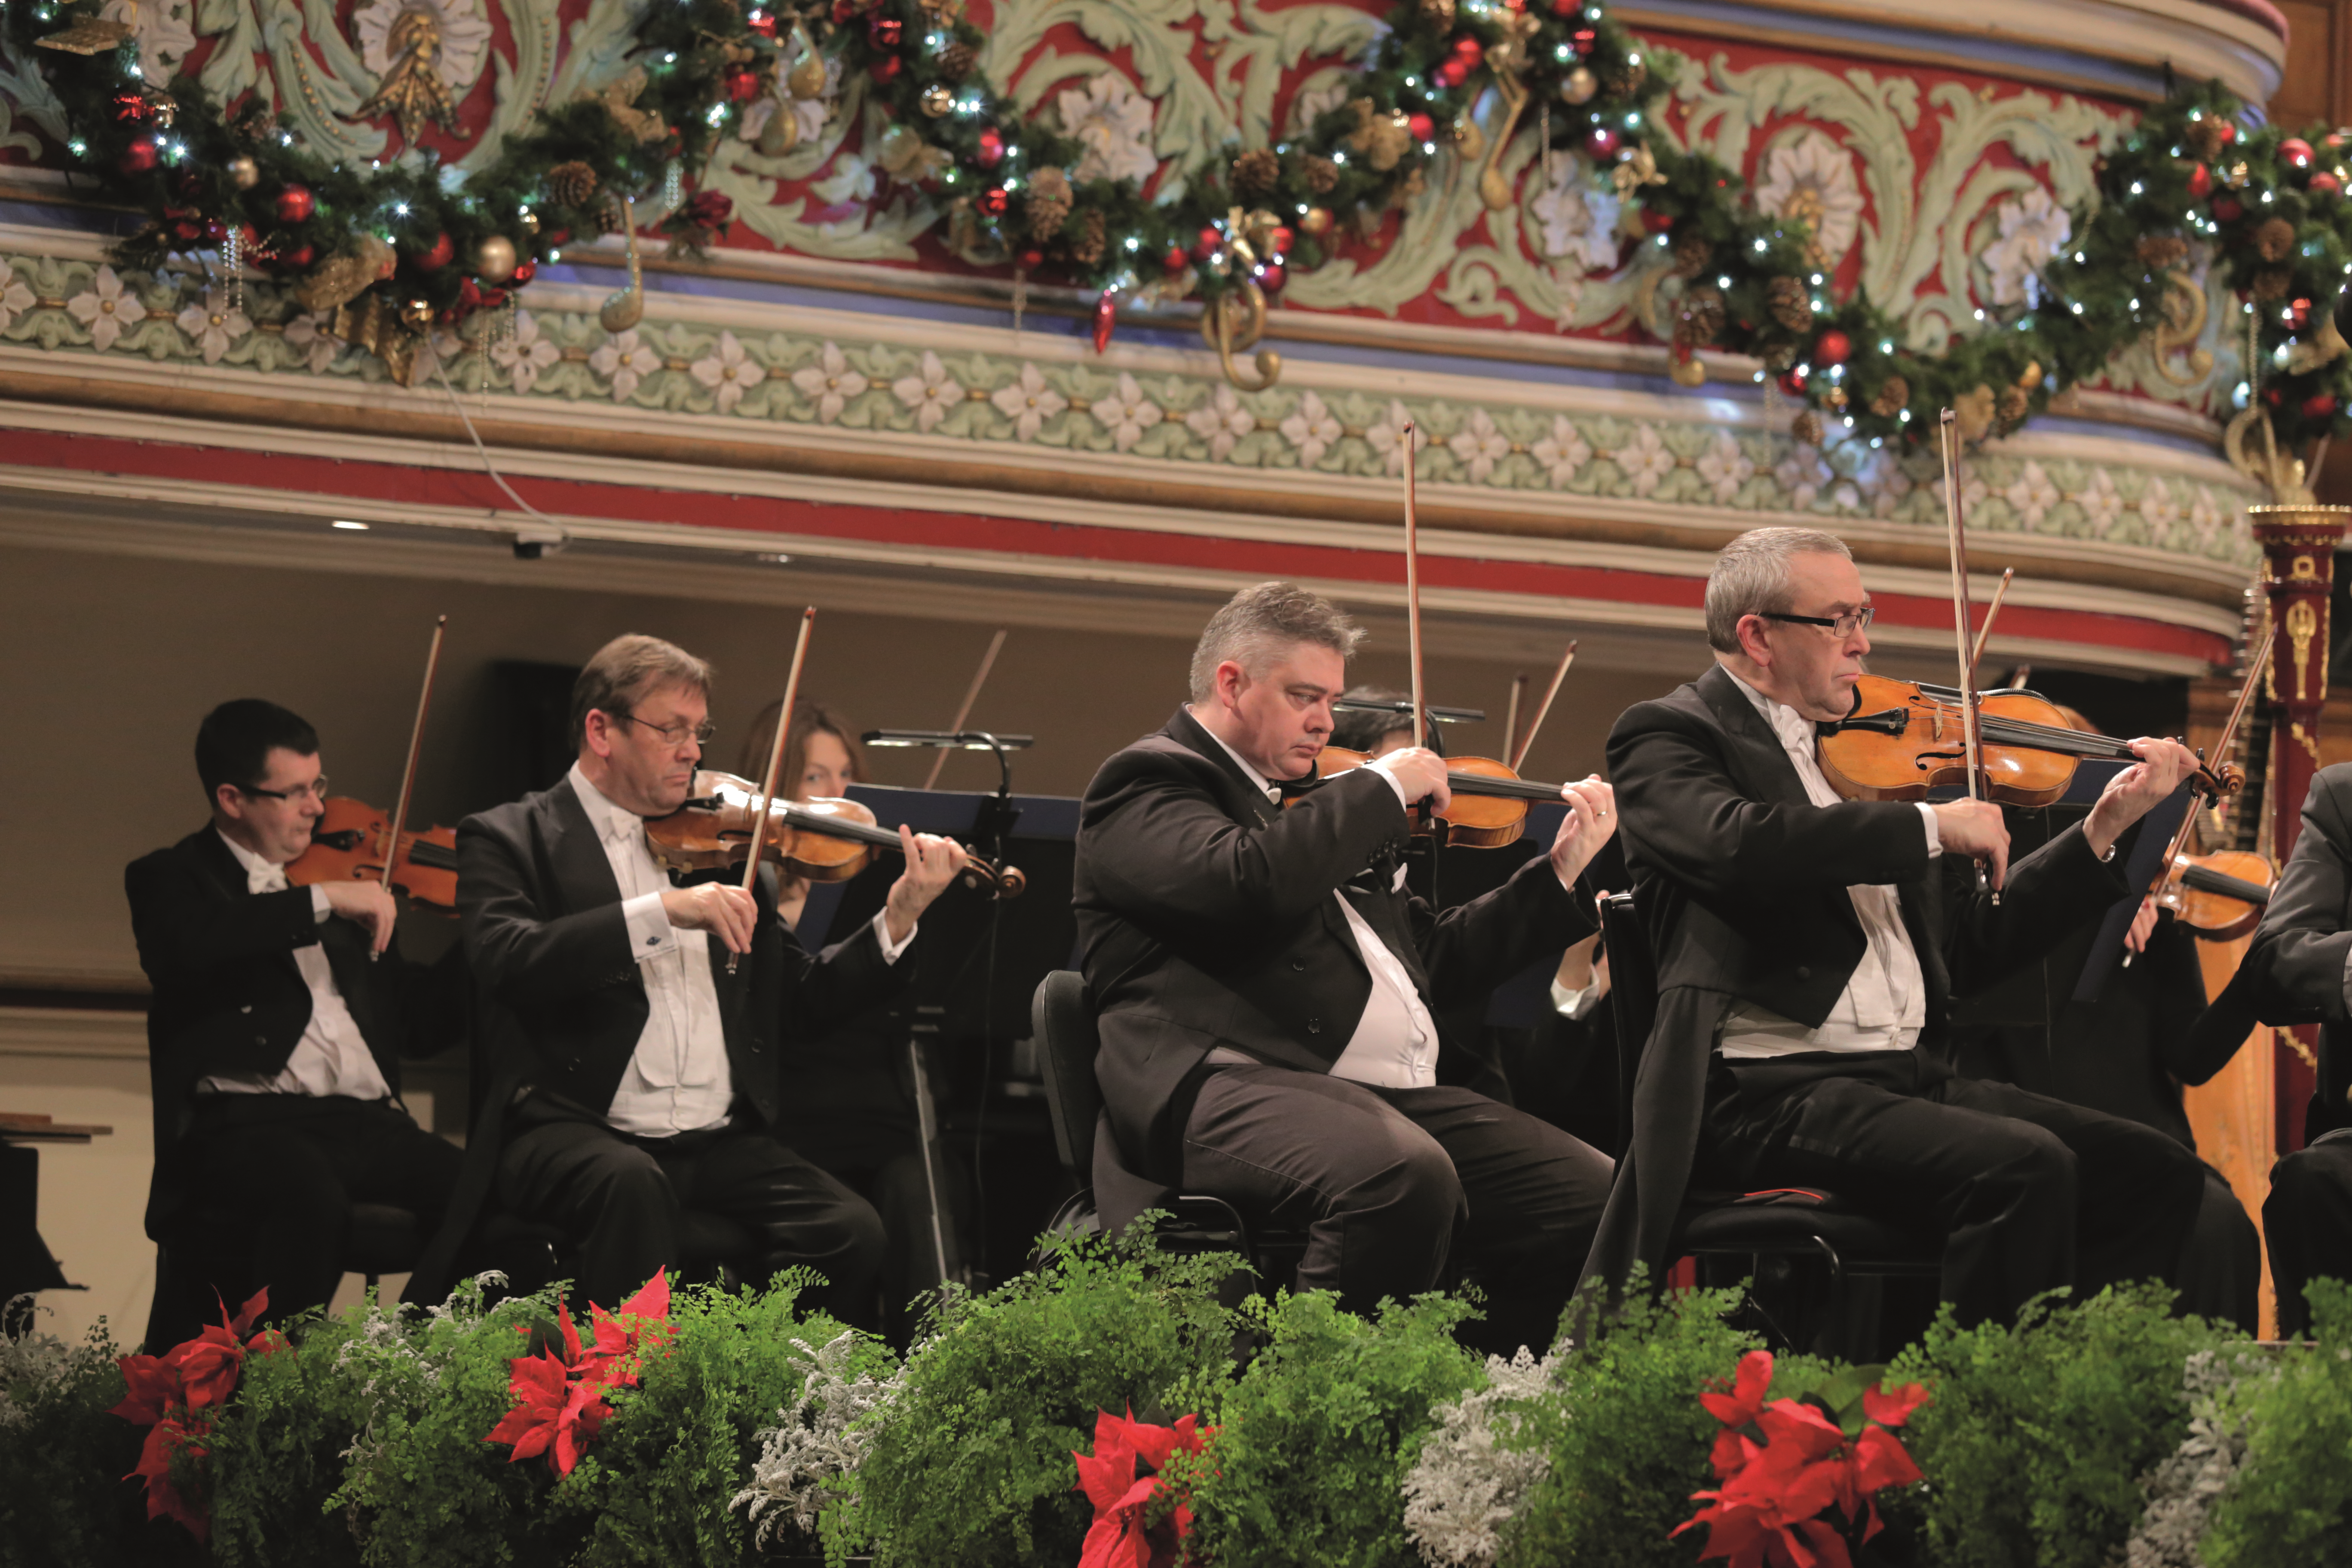 Orchestra of Opera North Christmas Concert